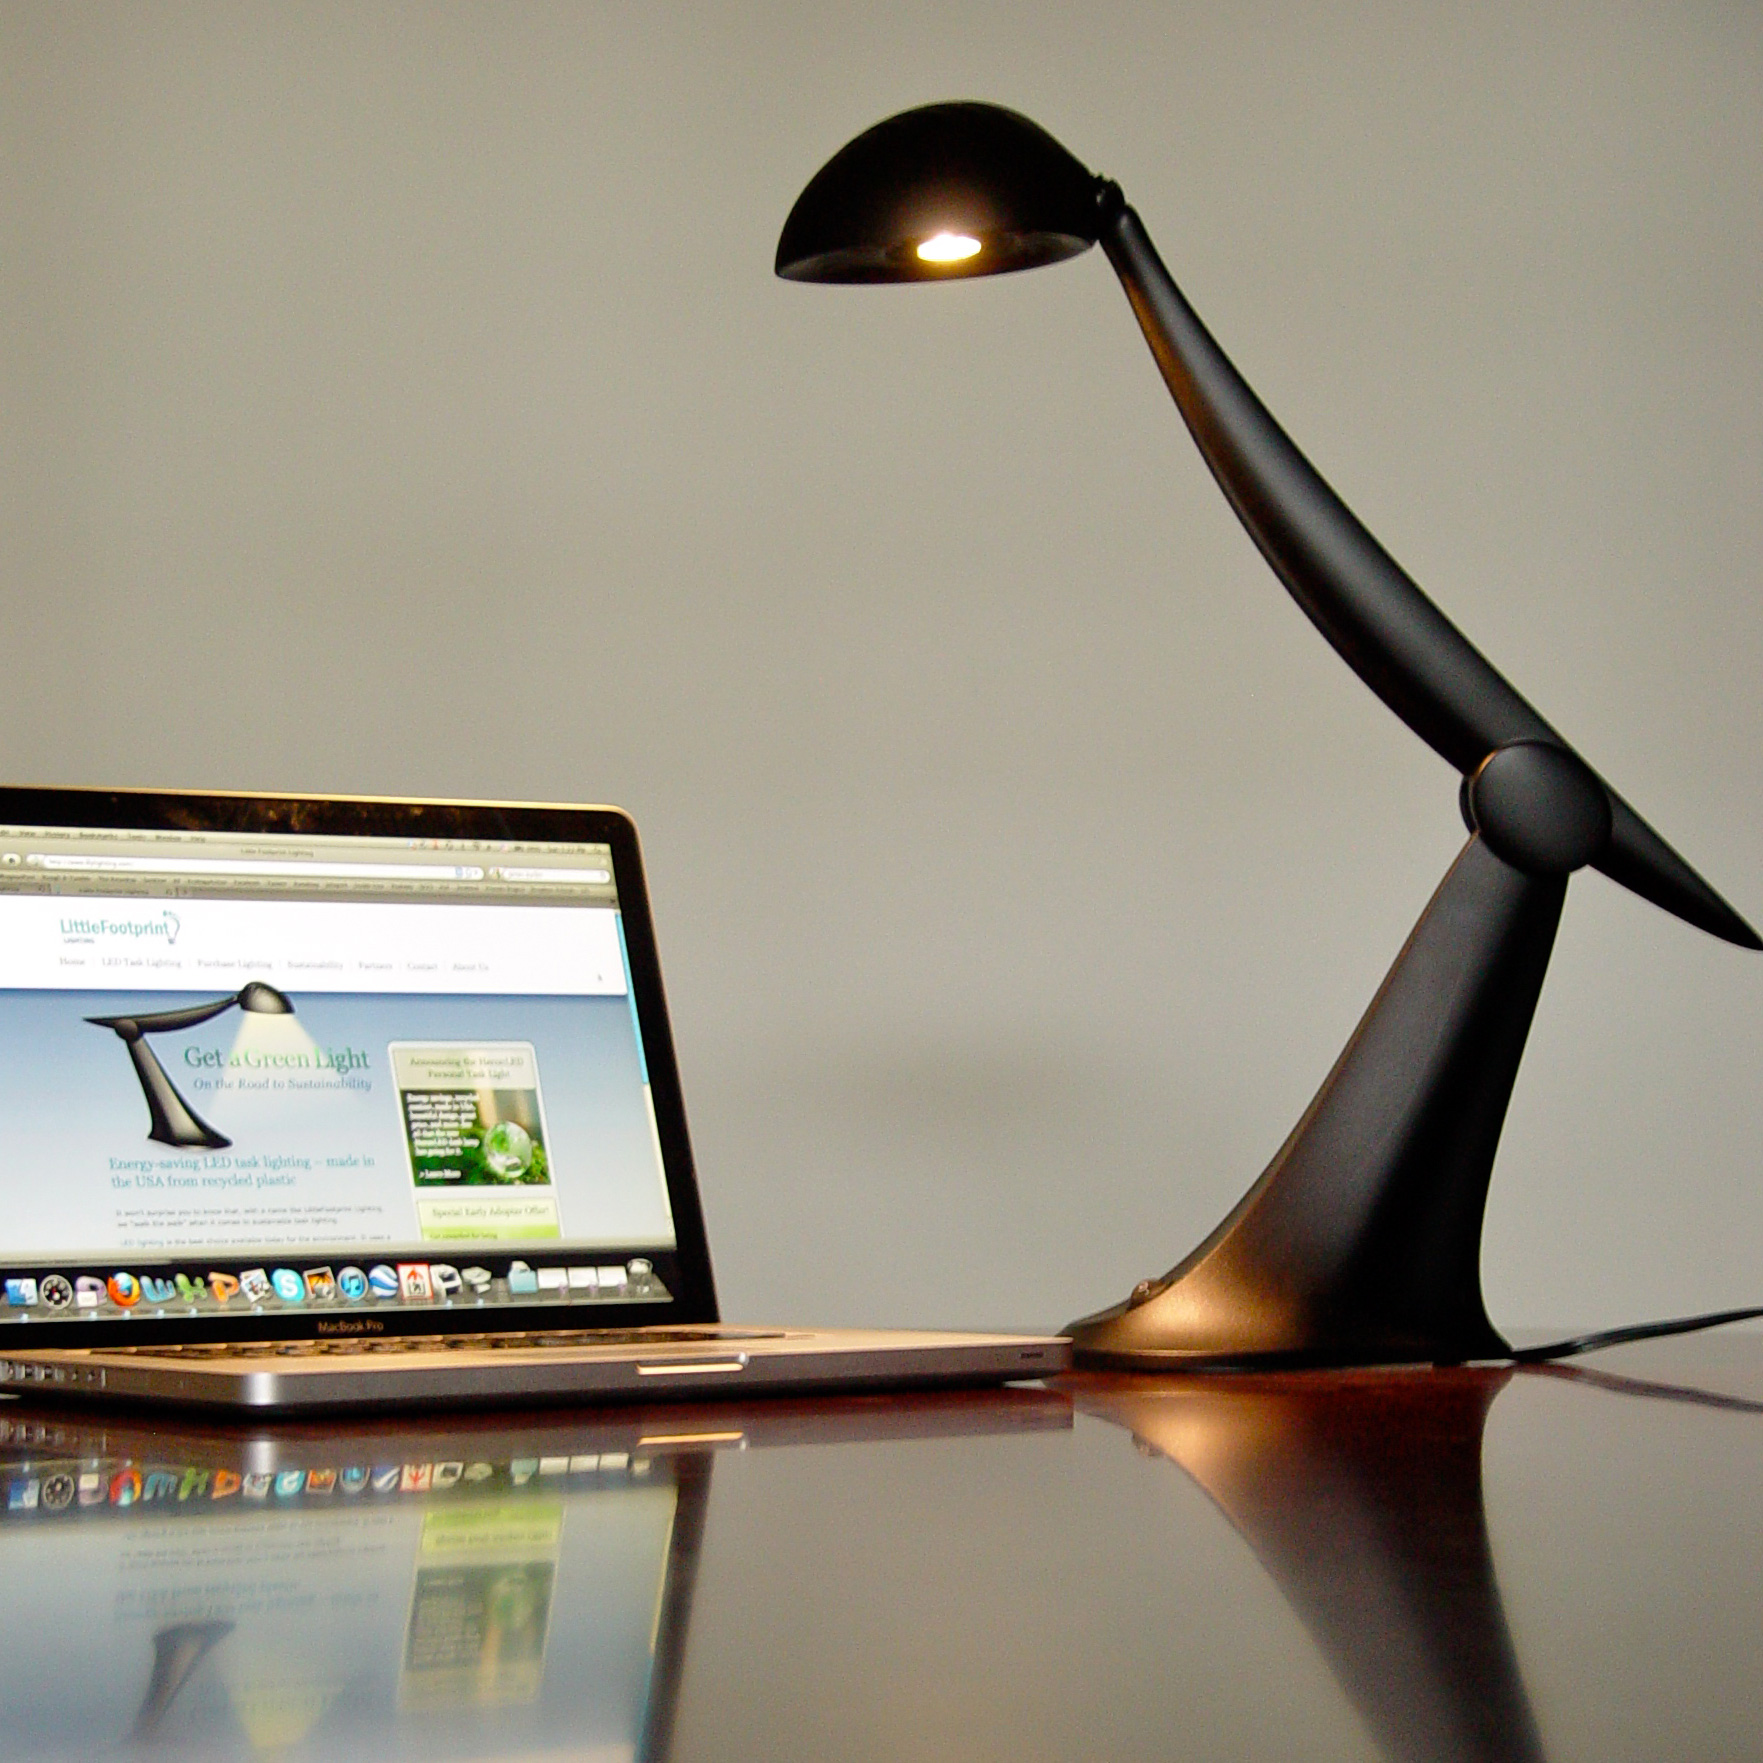 Cool Desk Lamps Home Design Interiors Inside Ideas Interiors design about Everything [magnanprojects.com]